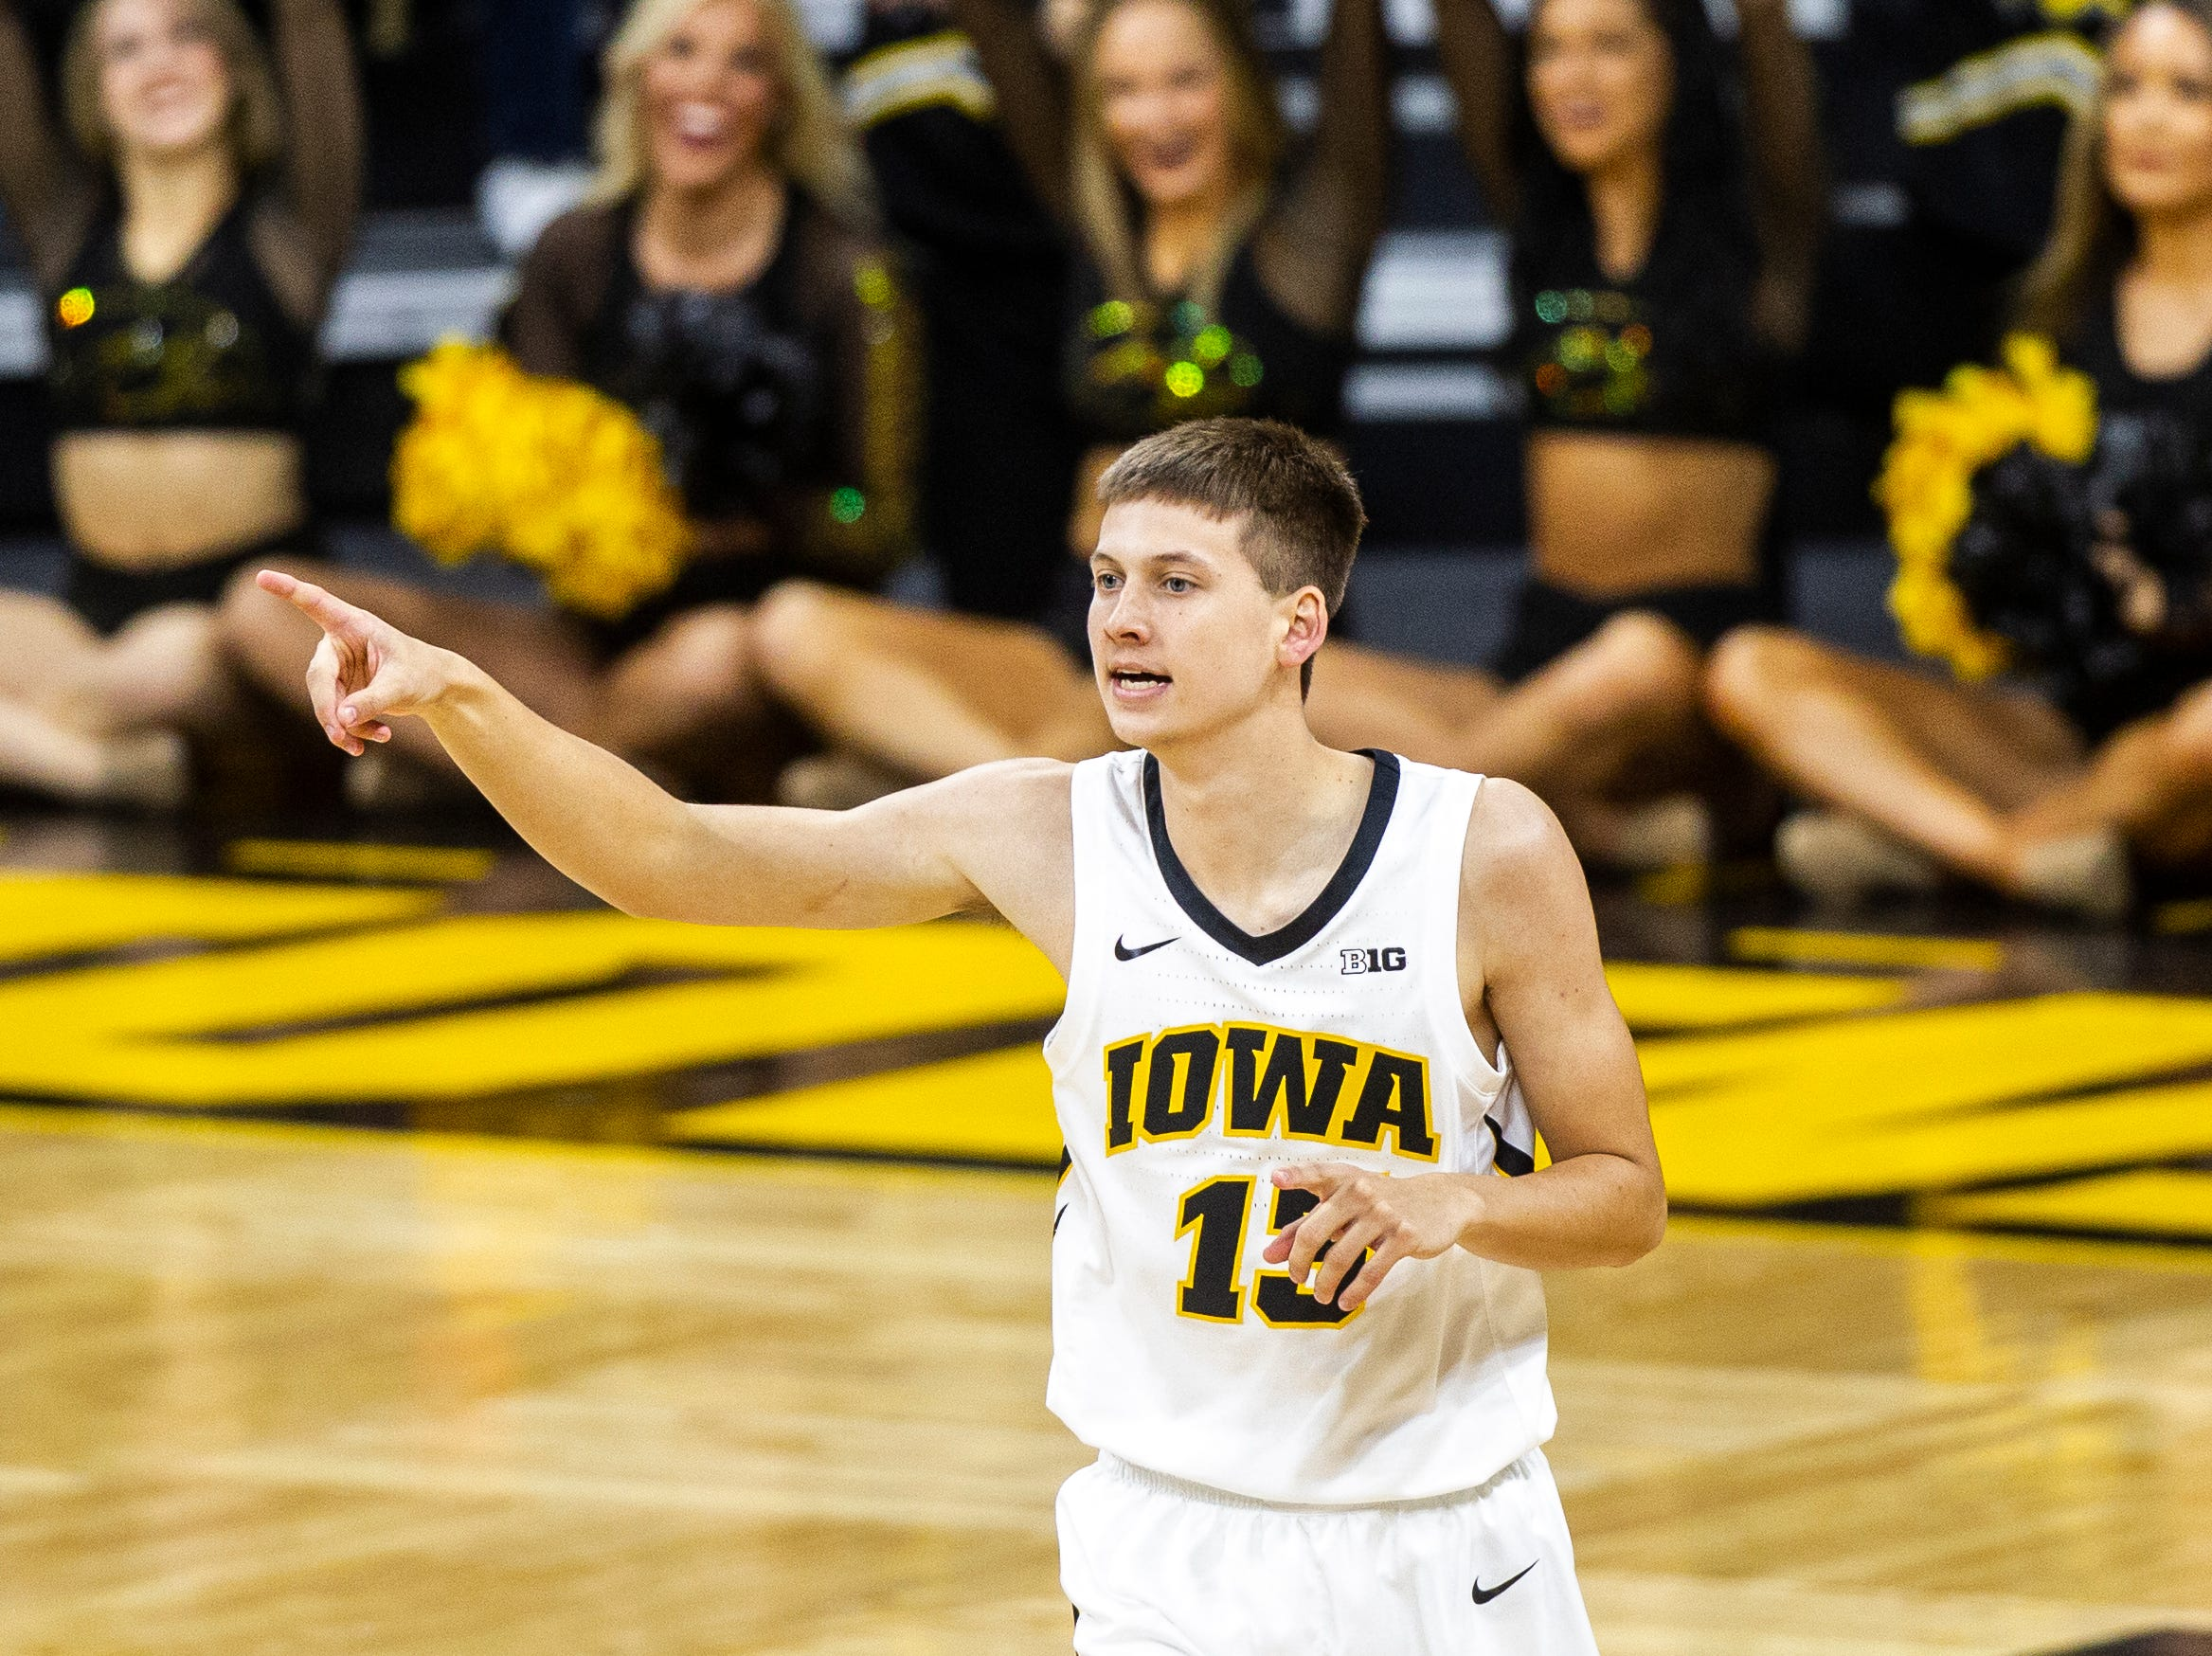 Iowa guard Austin Ash (13) reacts after hitting a 3 during a men's basketball exhibition game on Sunday, Nov. 4, 2018, at Carver-Hawkeye Arena in Iowa City.